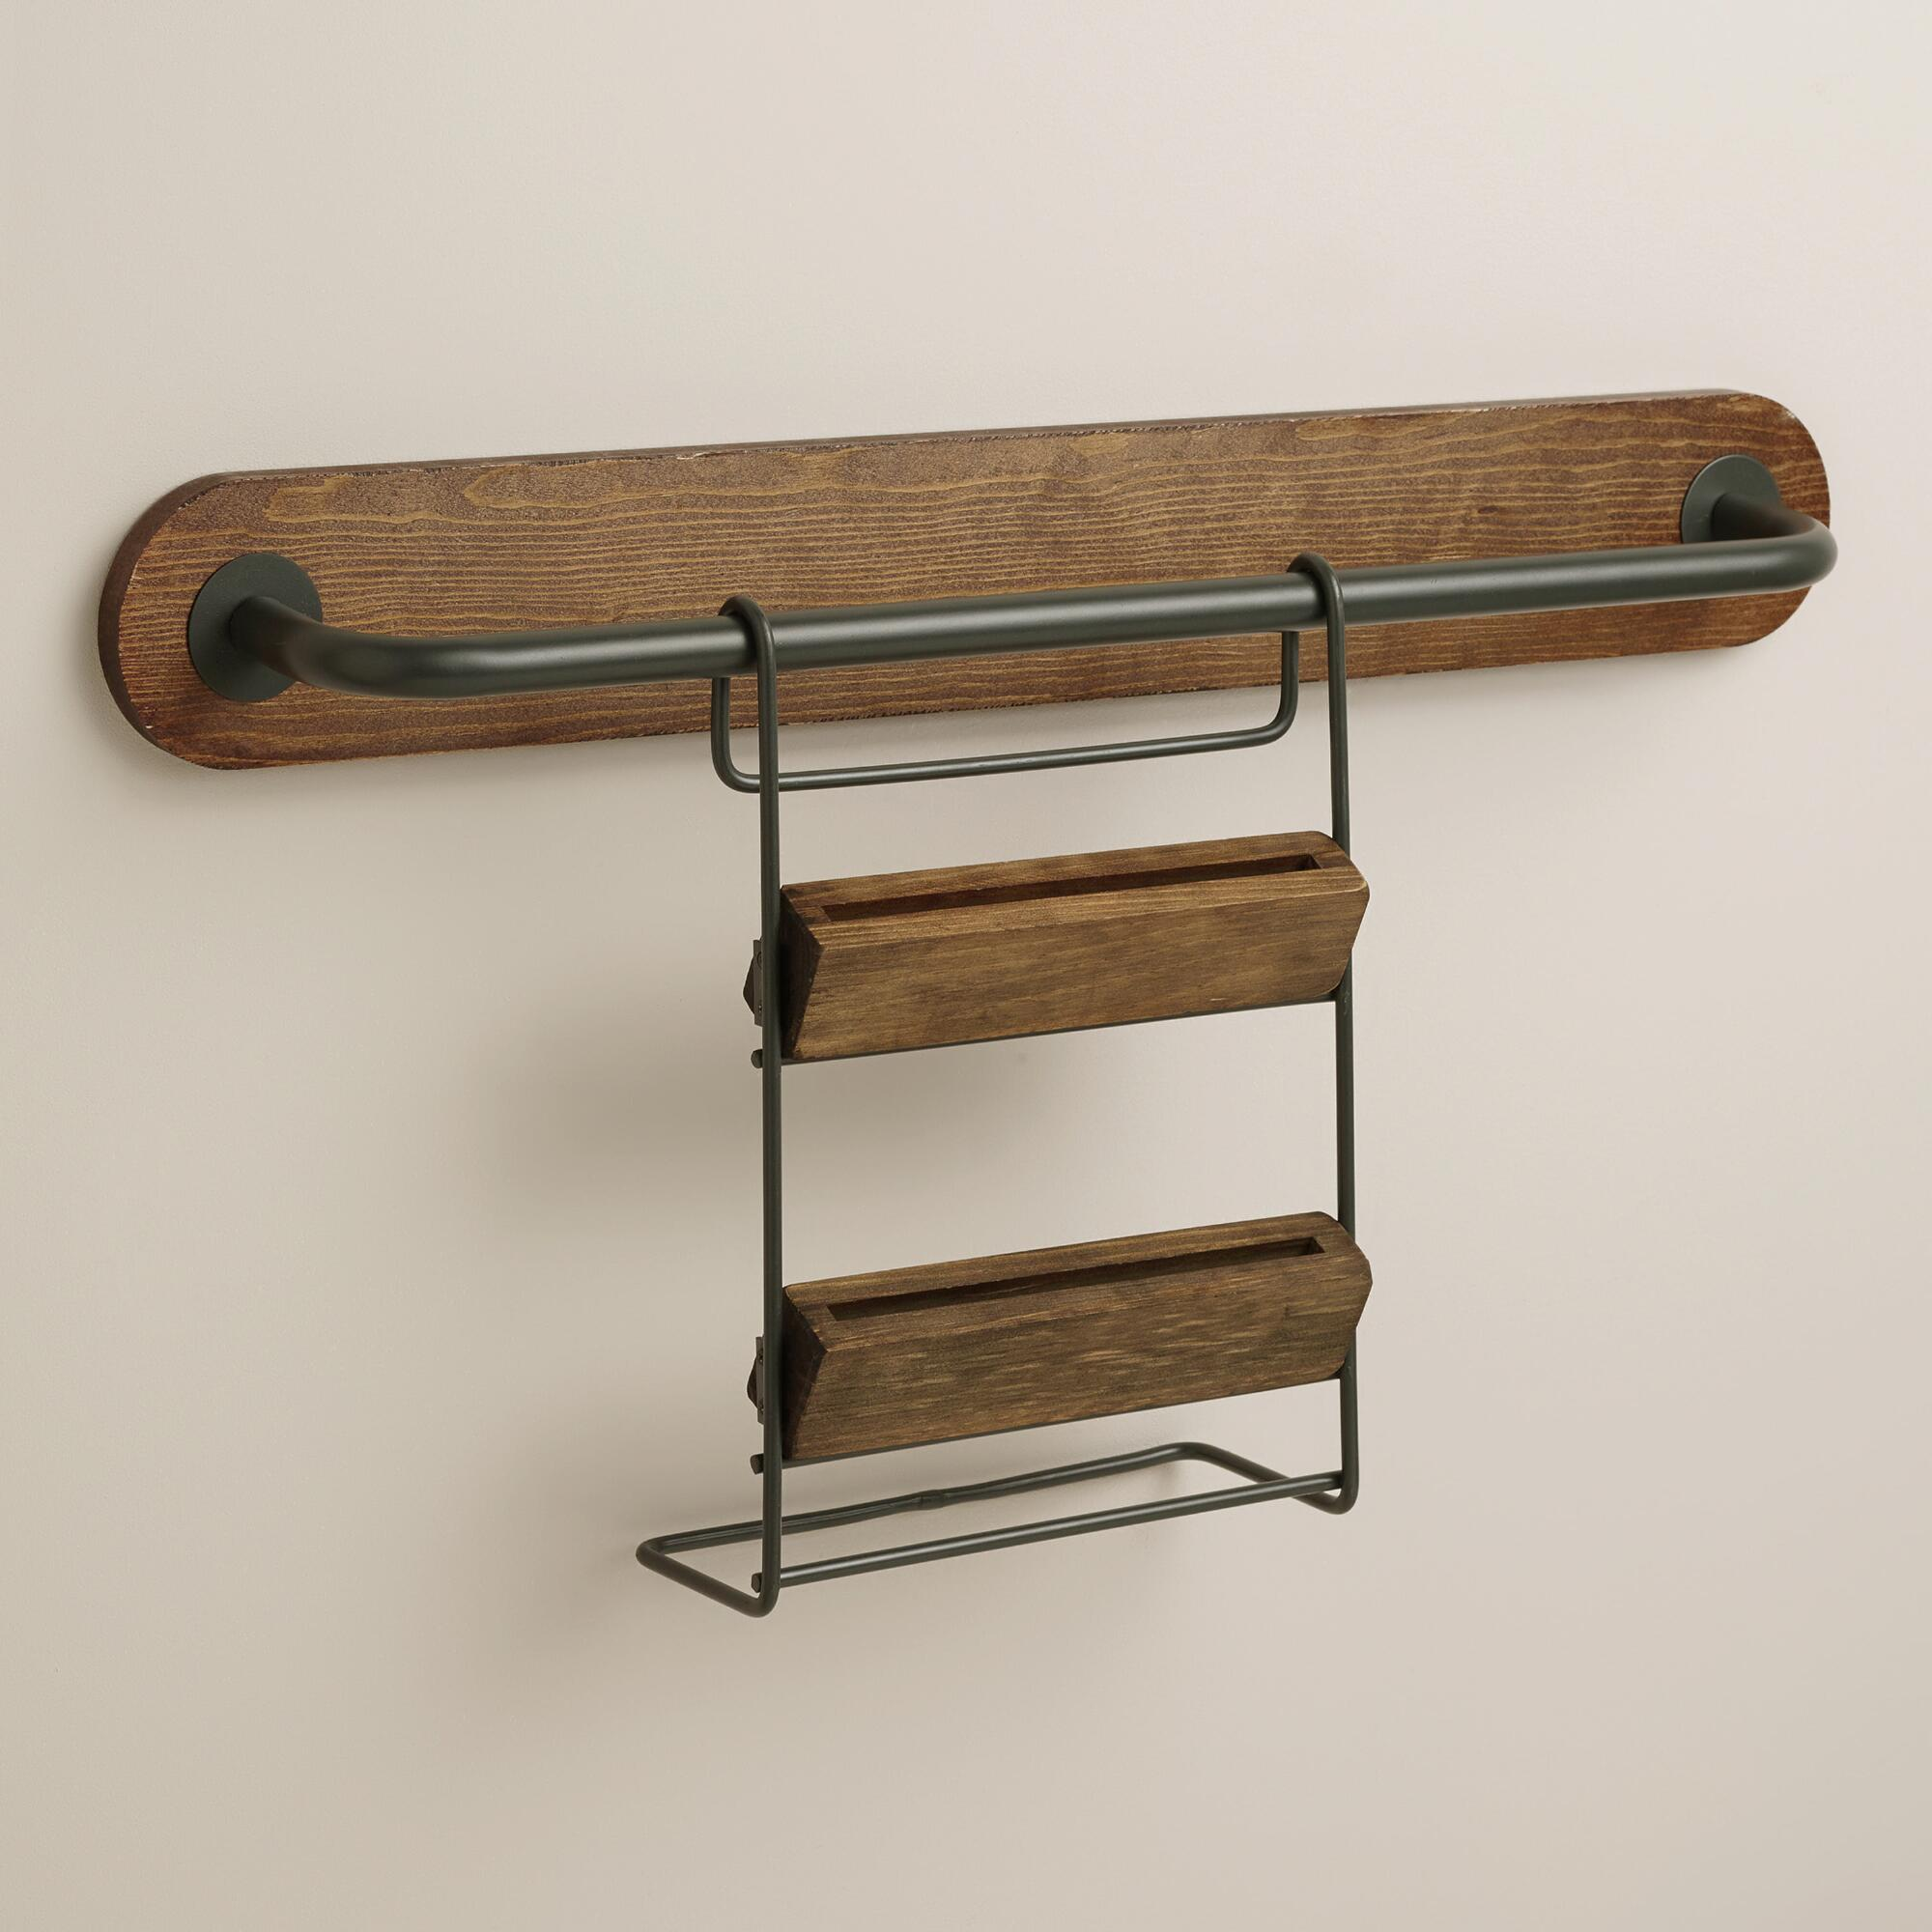 Modular Kitchen Wall Storage Knife Rack  World Market